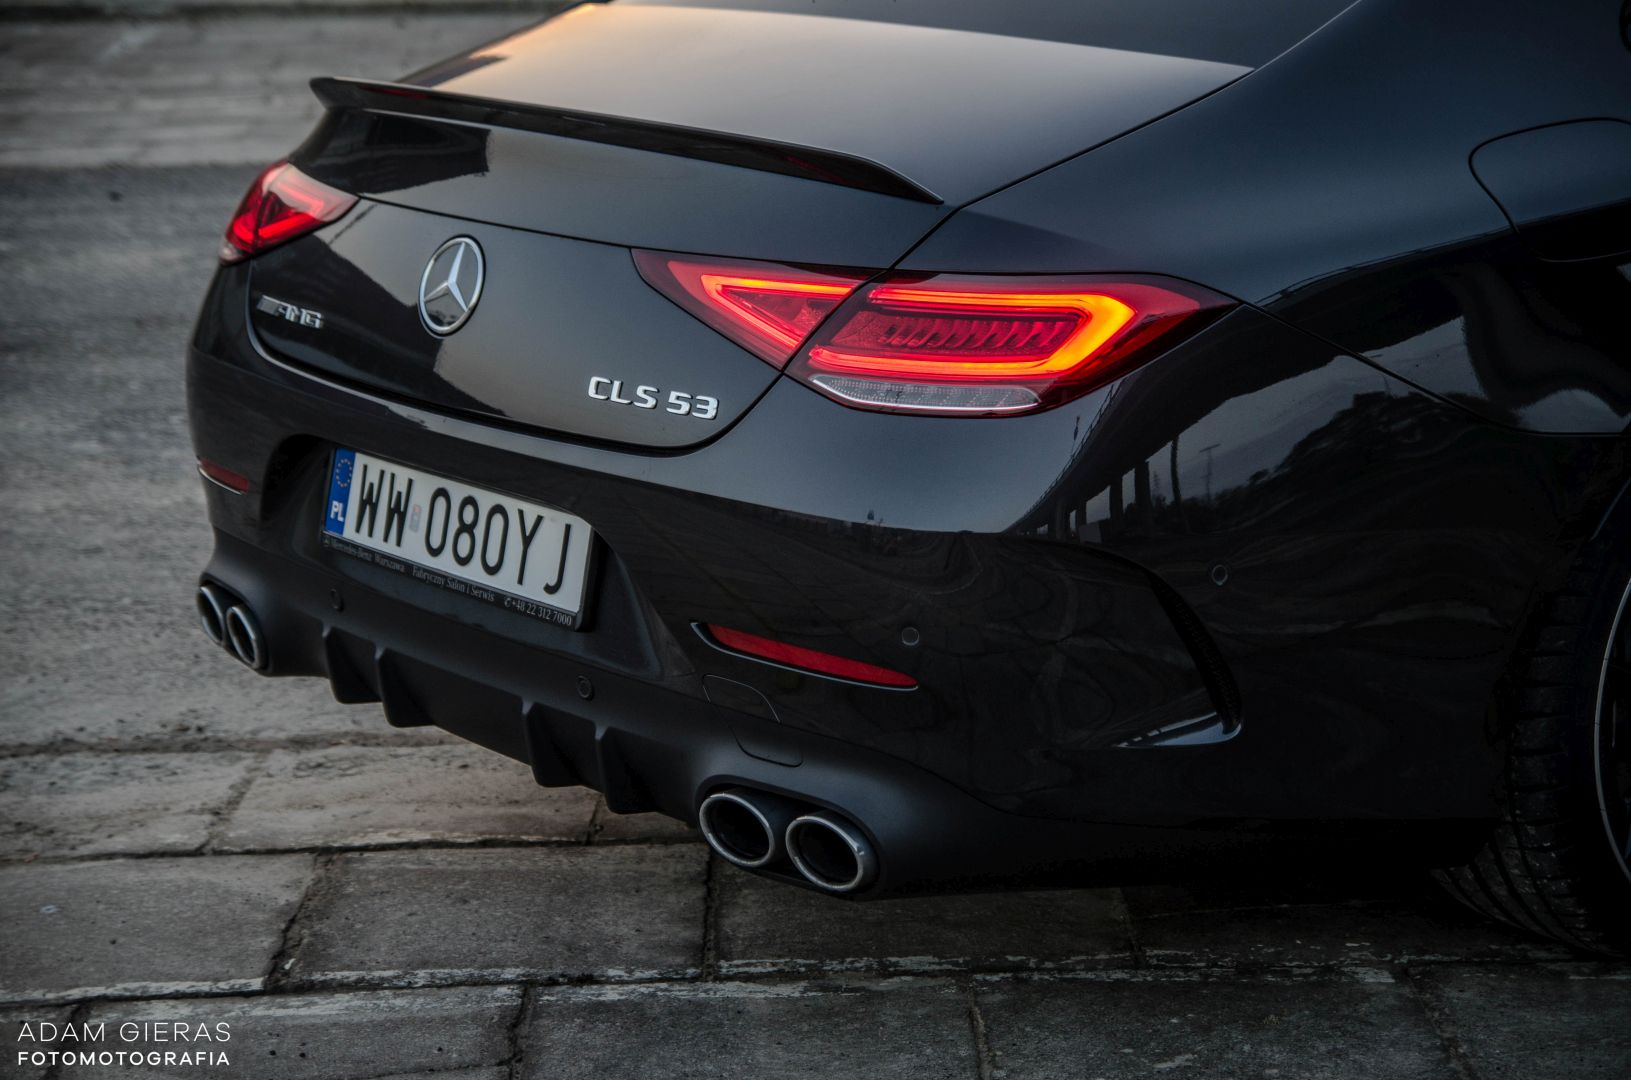 cls53 AMG 26